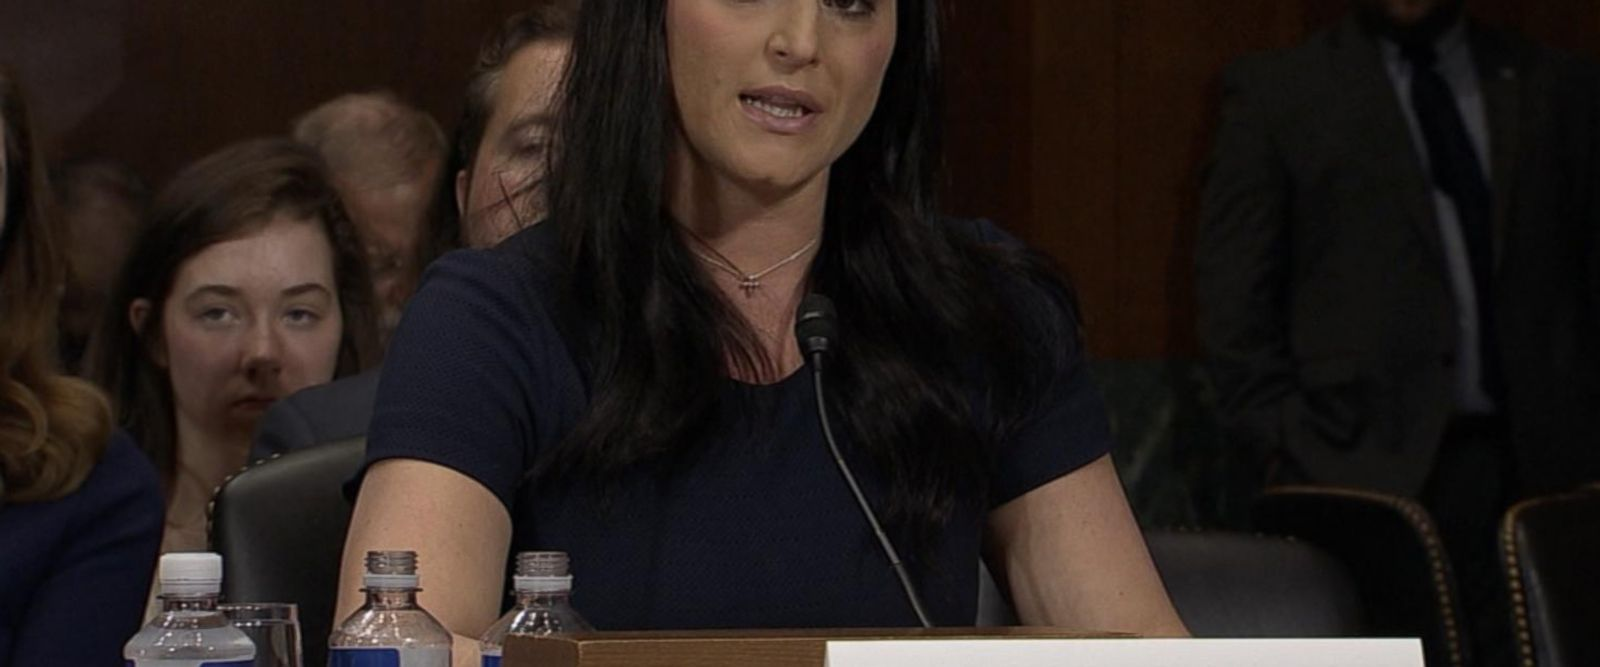 VIDEO: Former Olympic gymnasts testify before Congress about sex-abuse scandal